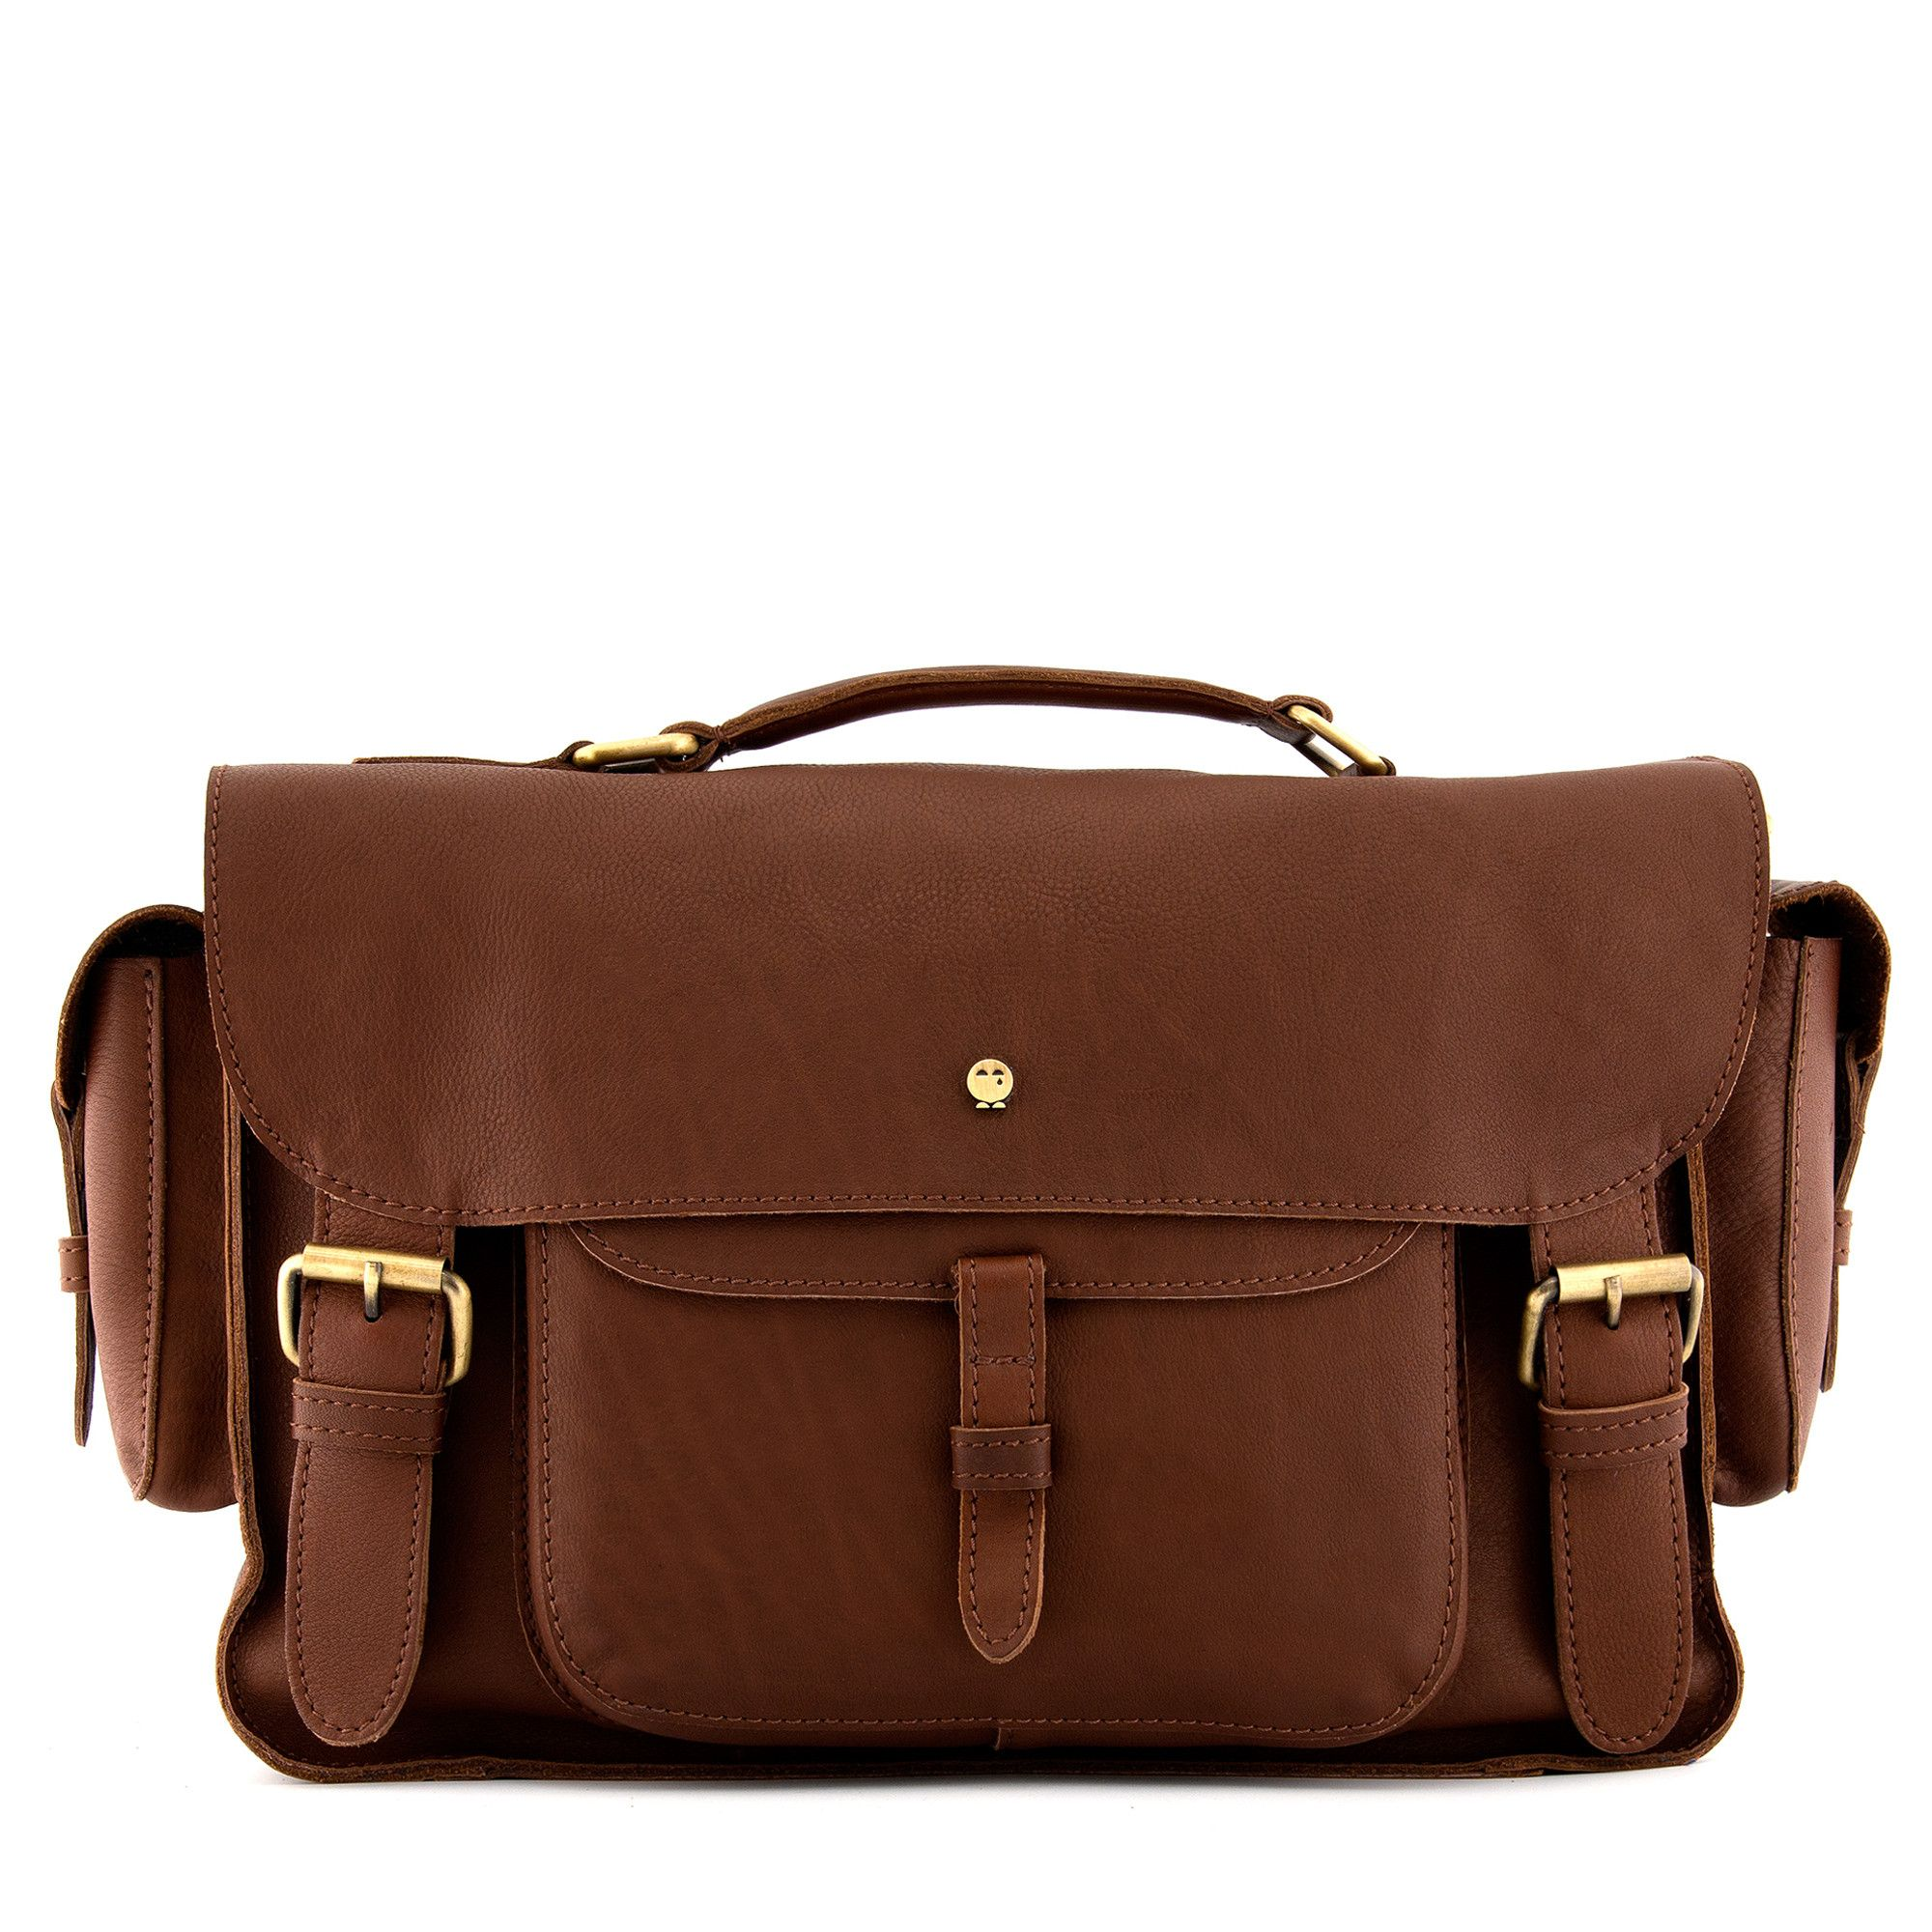 ee794edd1 The Jankis Brown Leather Satchel Bag by Yoshi | wish list | Brown ...